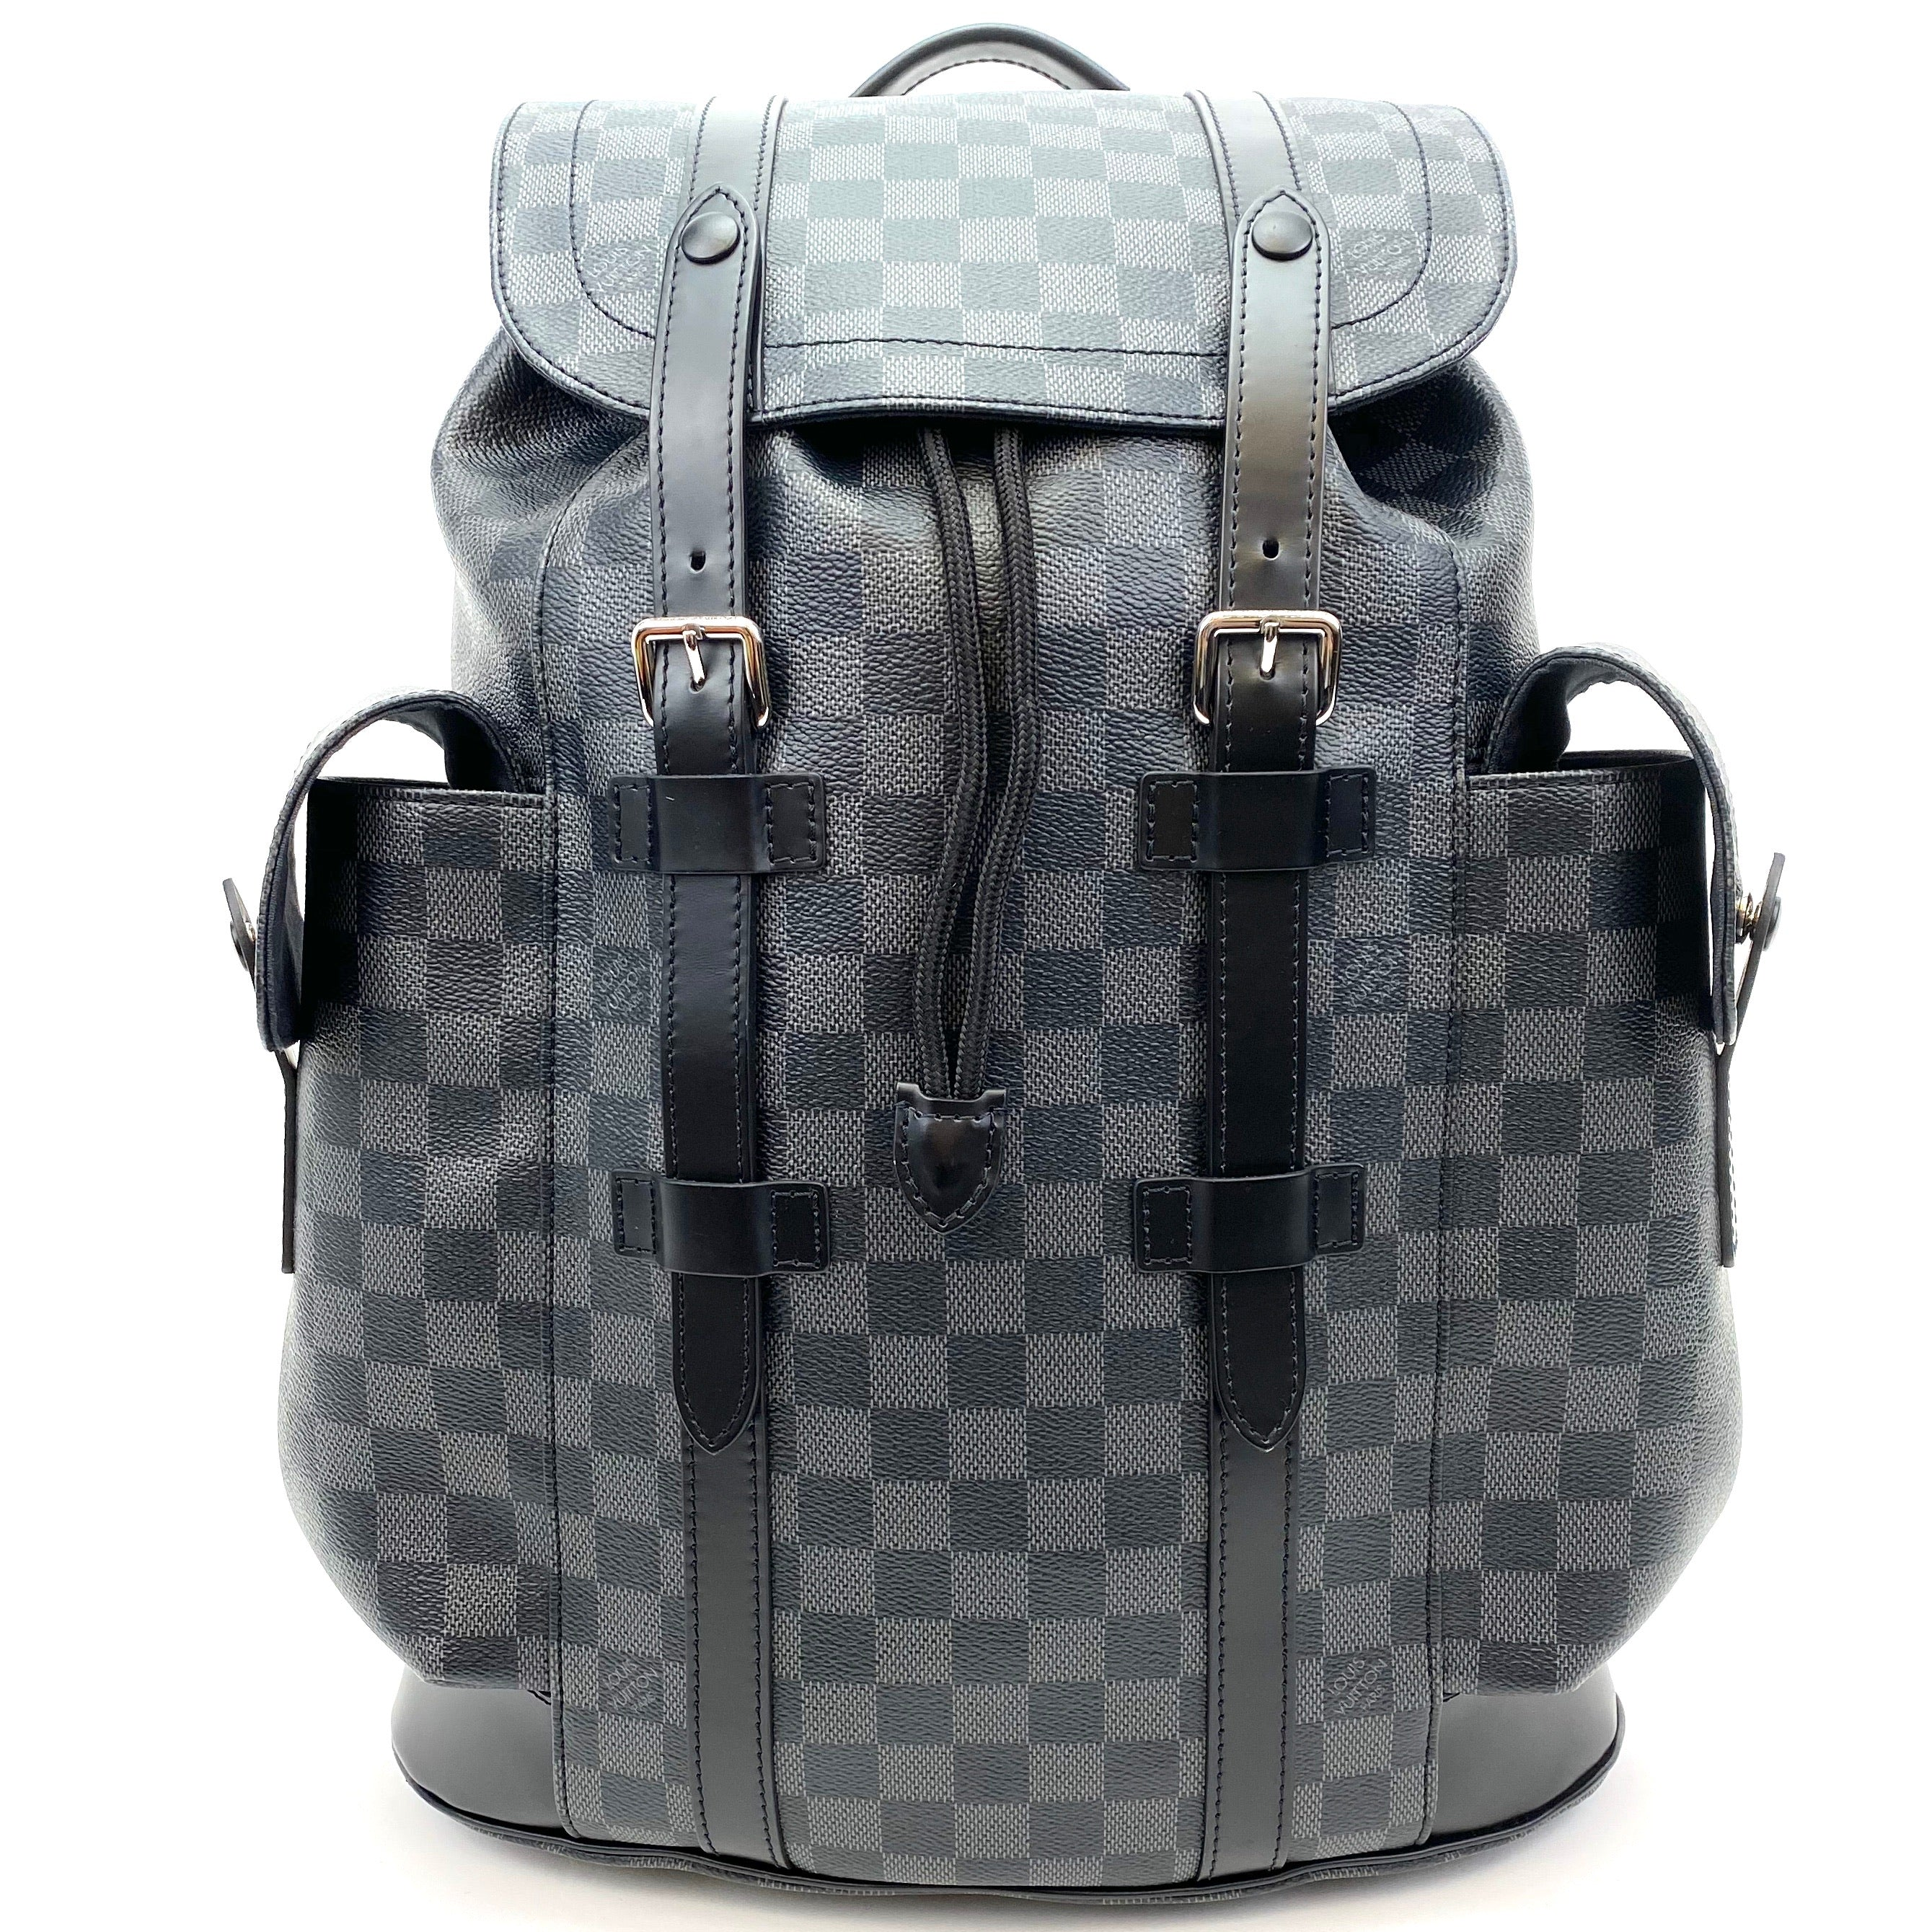 LOUIS VUITTON Damier Graphite Christopher PM